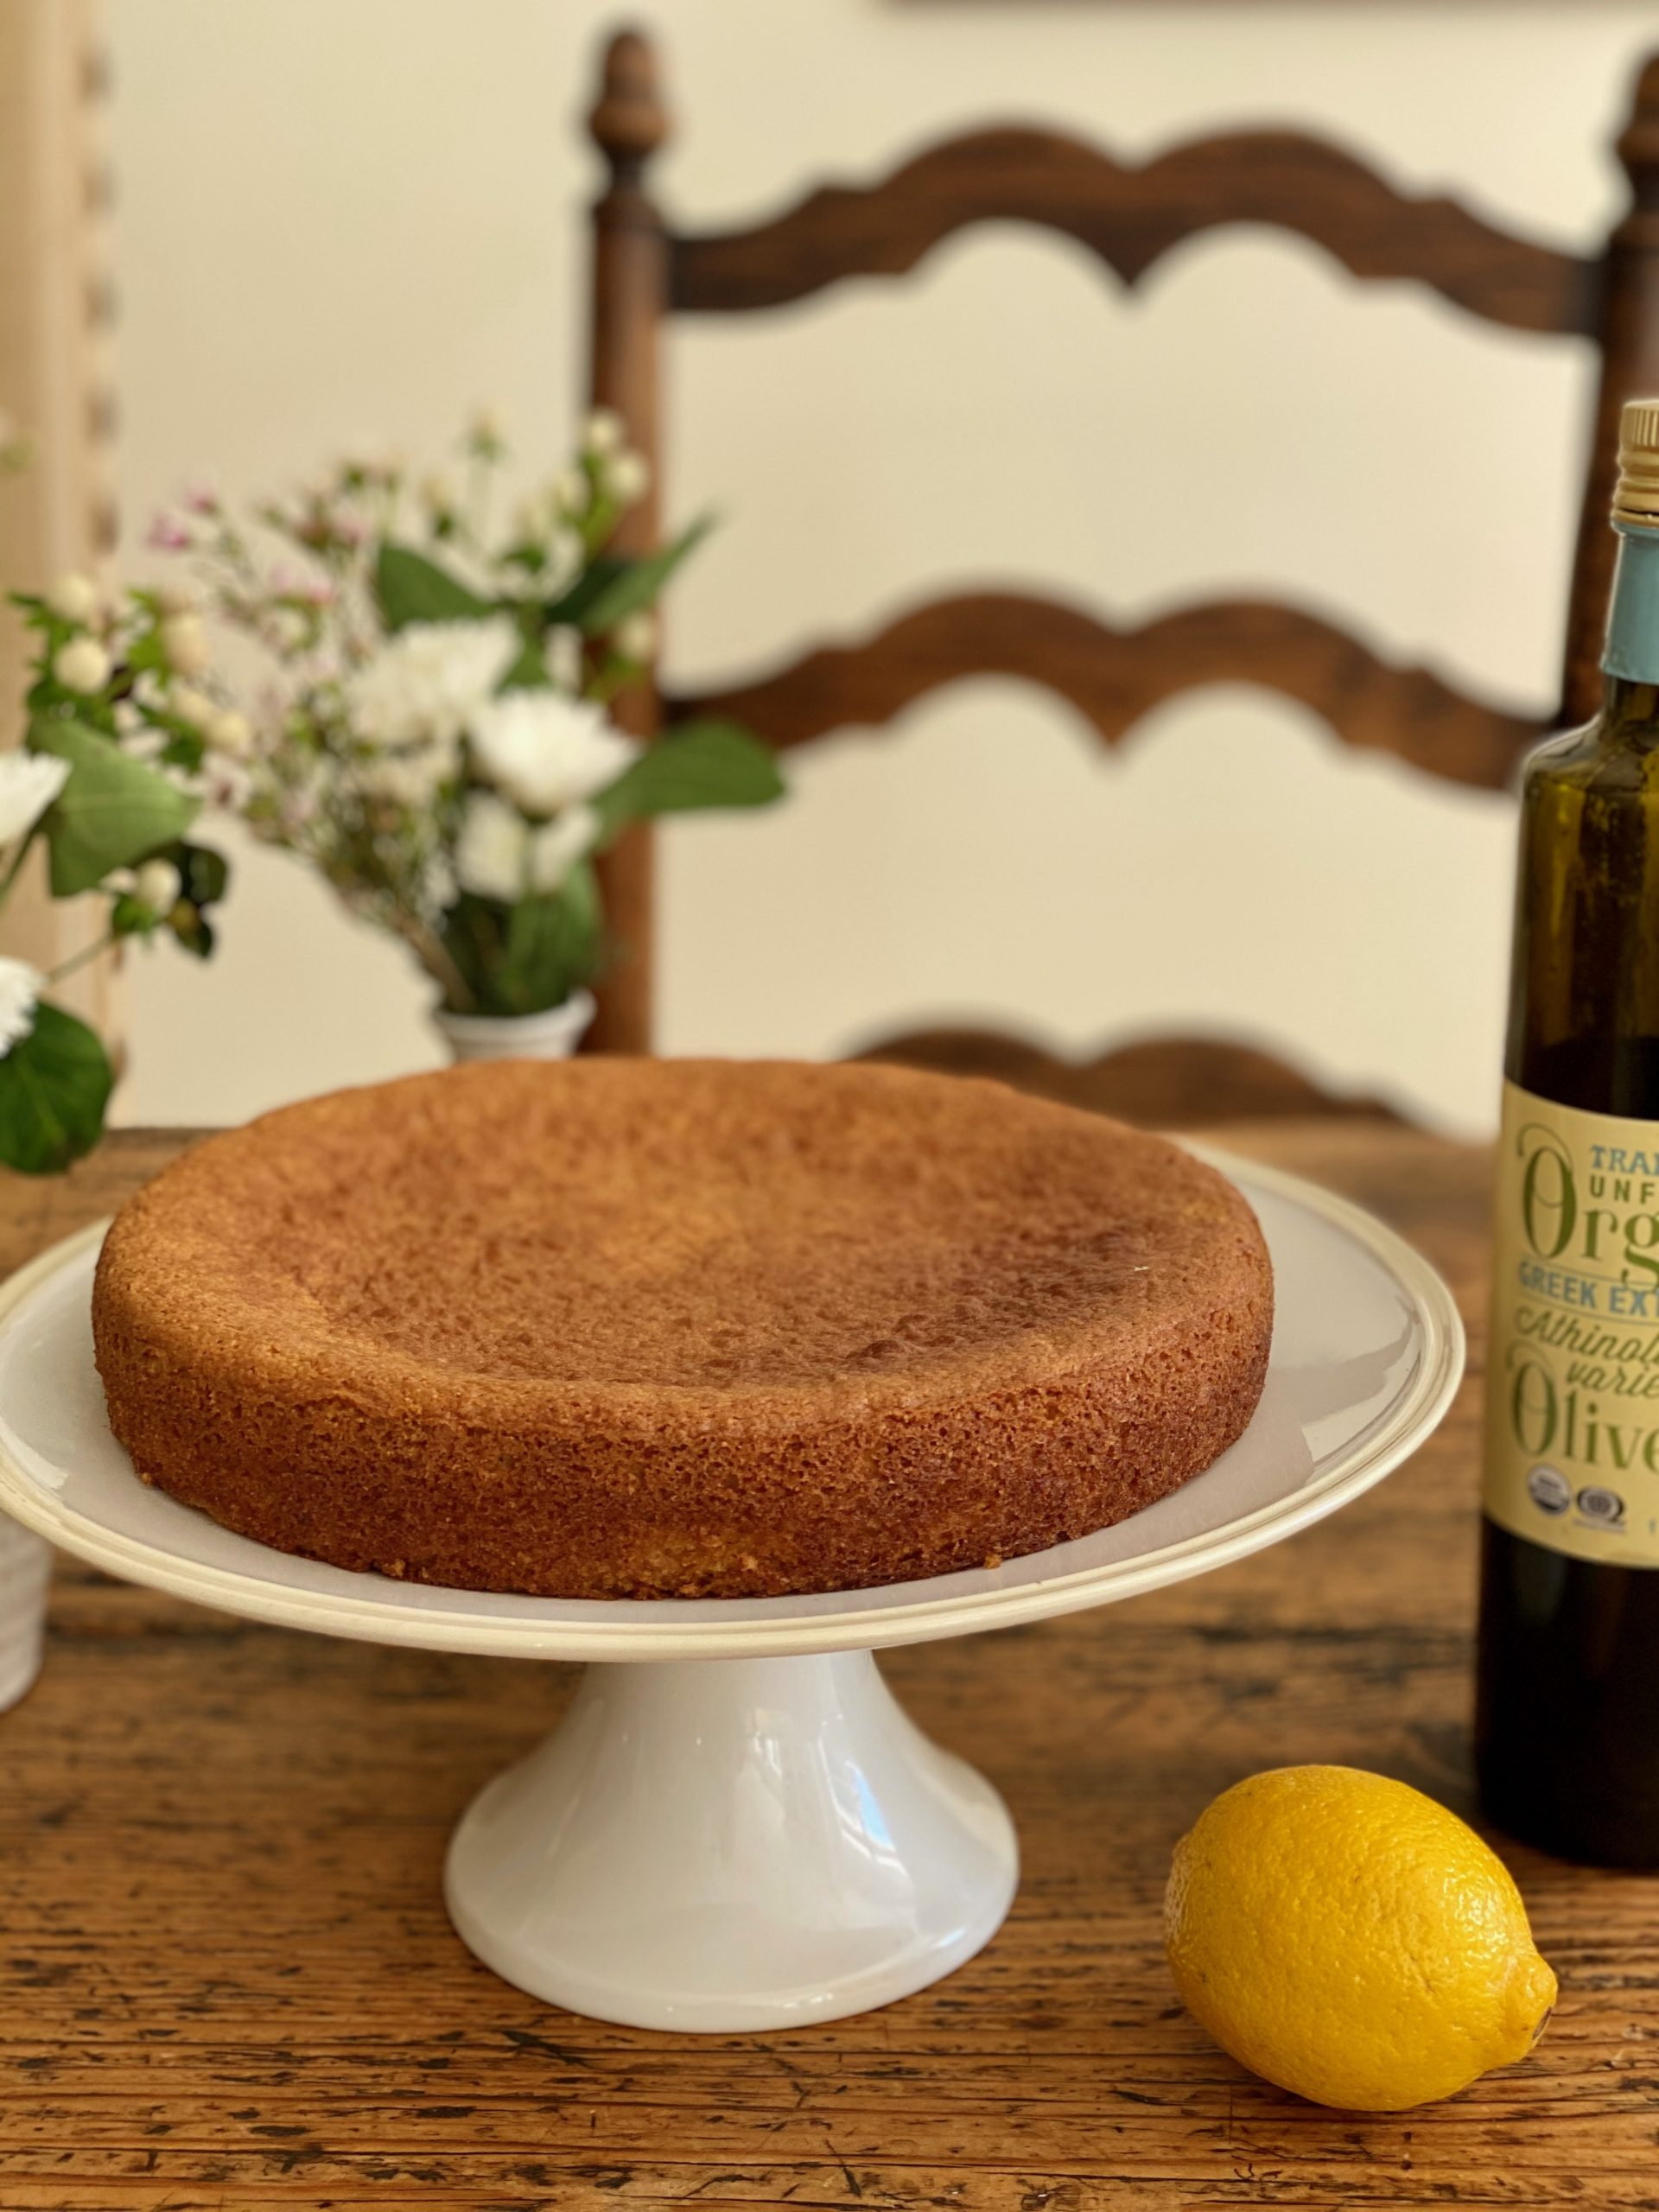 Olive oil lemon cake